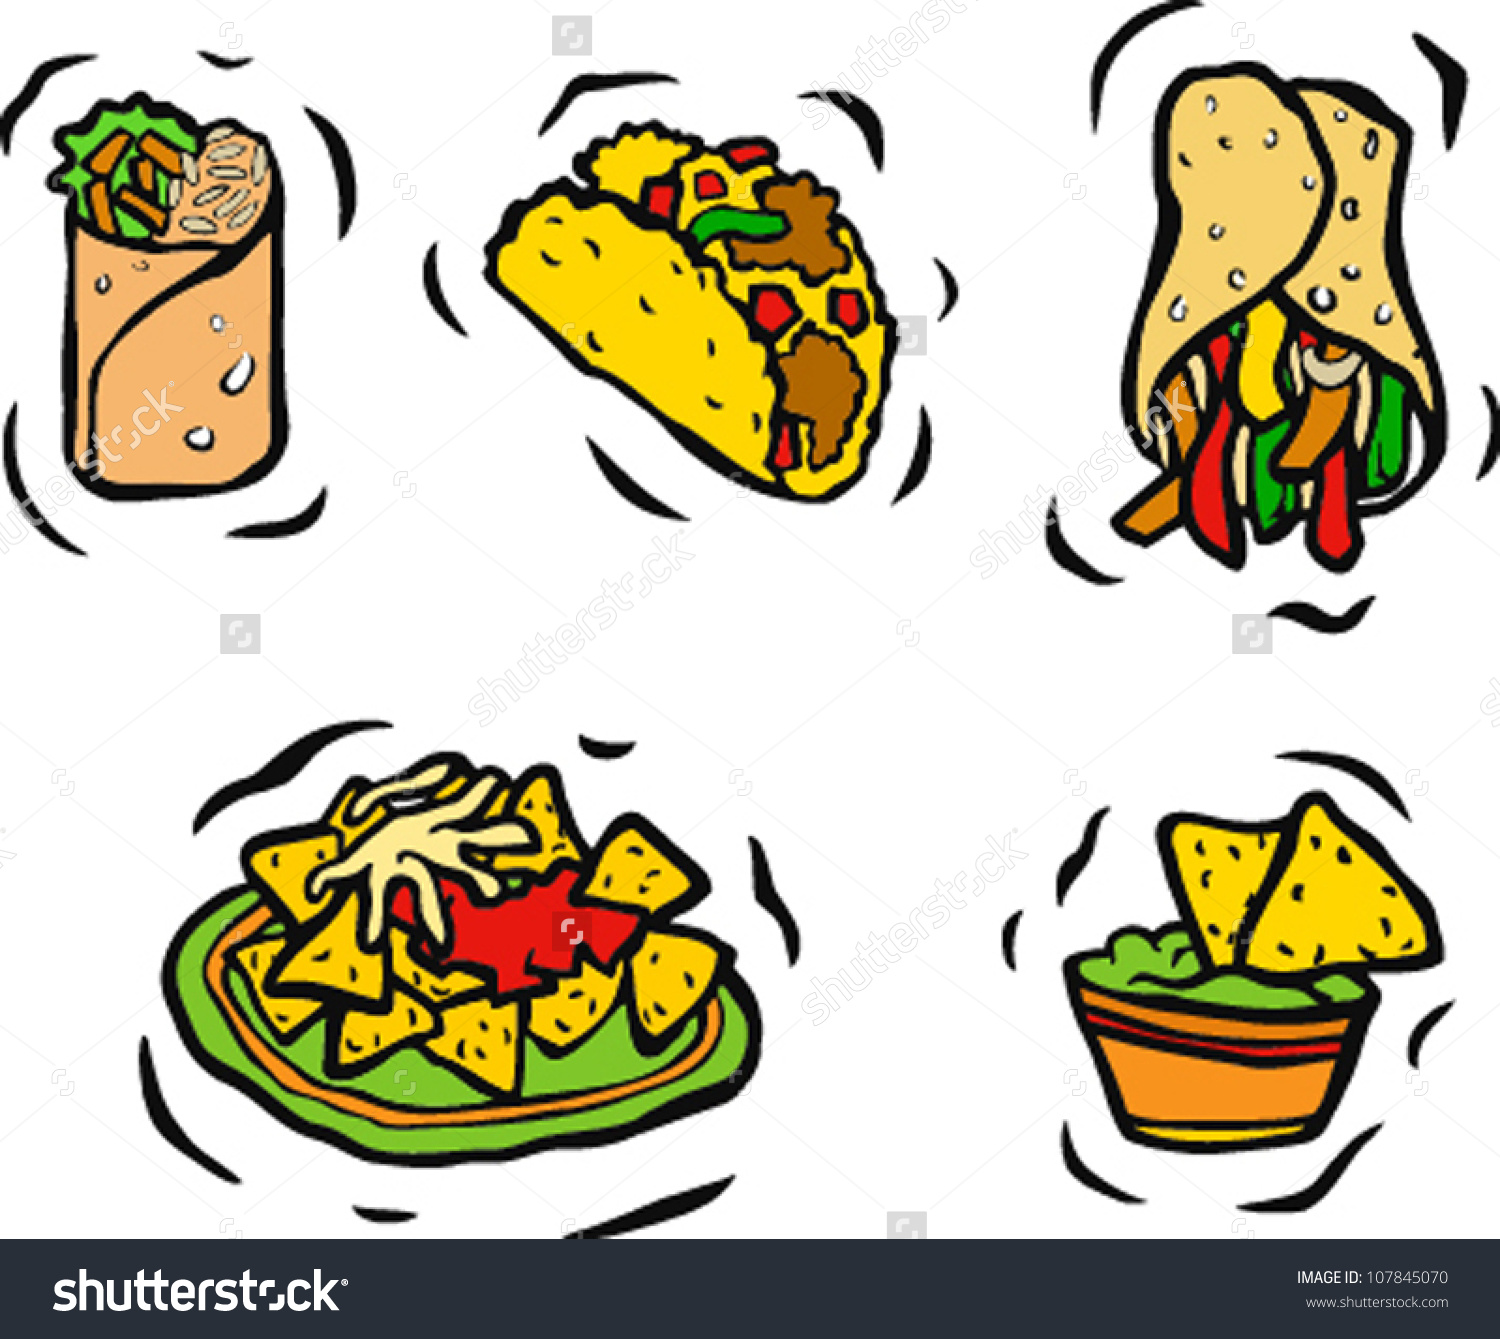 305 Mexican Food free clipart.